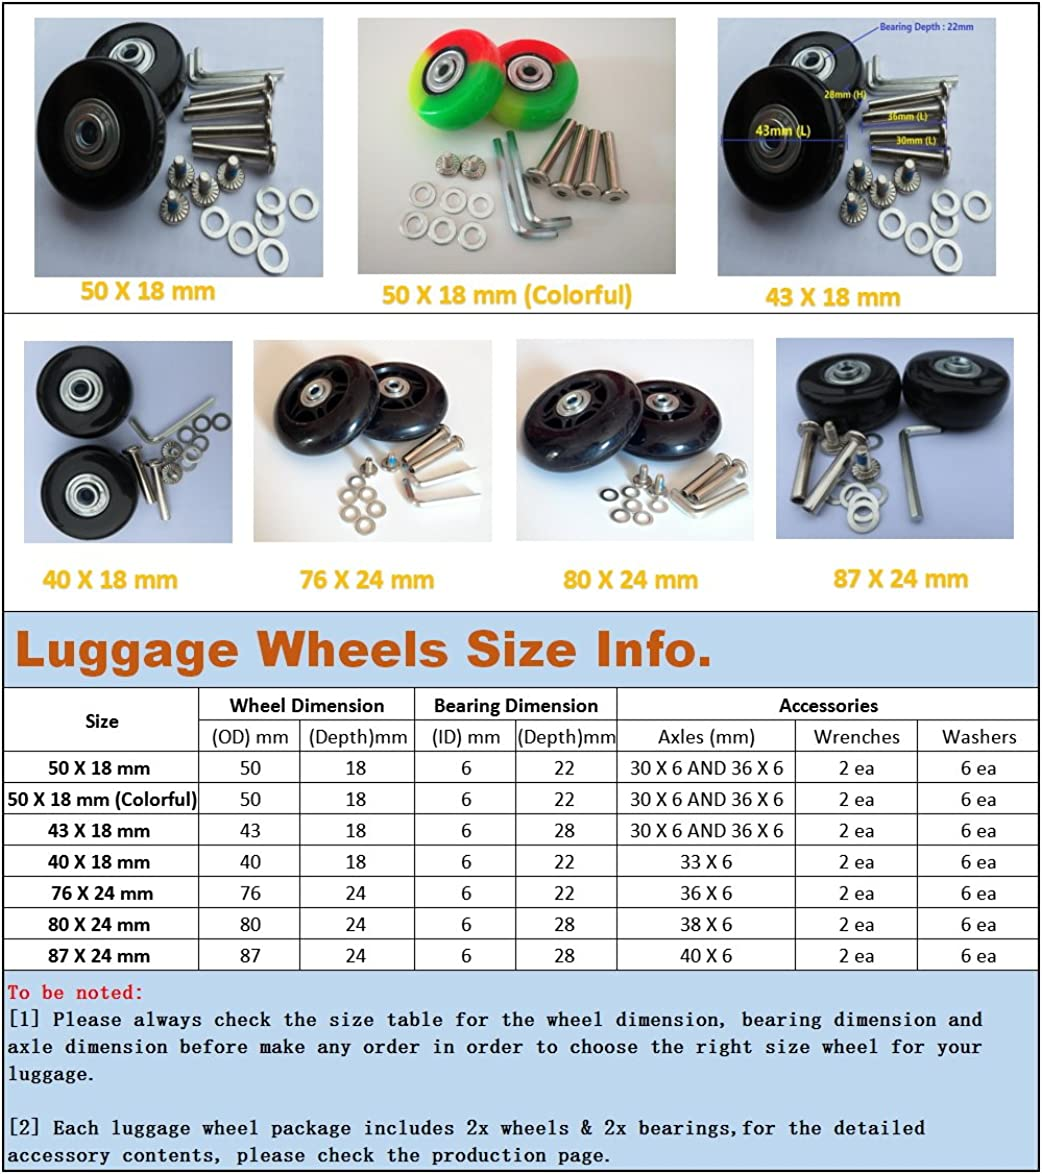 Eric_Leon 2 Set of Luggage Suitcase Replacement Wheels with ABEC 608zz Bearings, Packaged with our own designed bag Logo